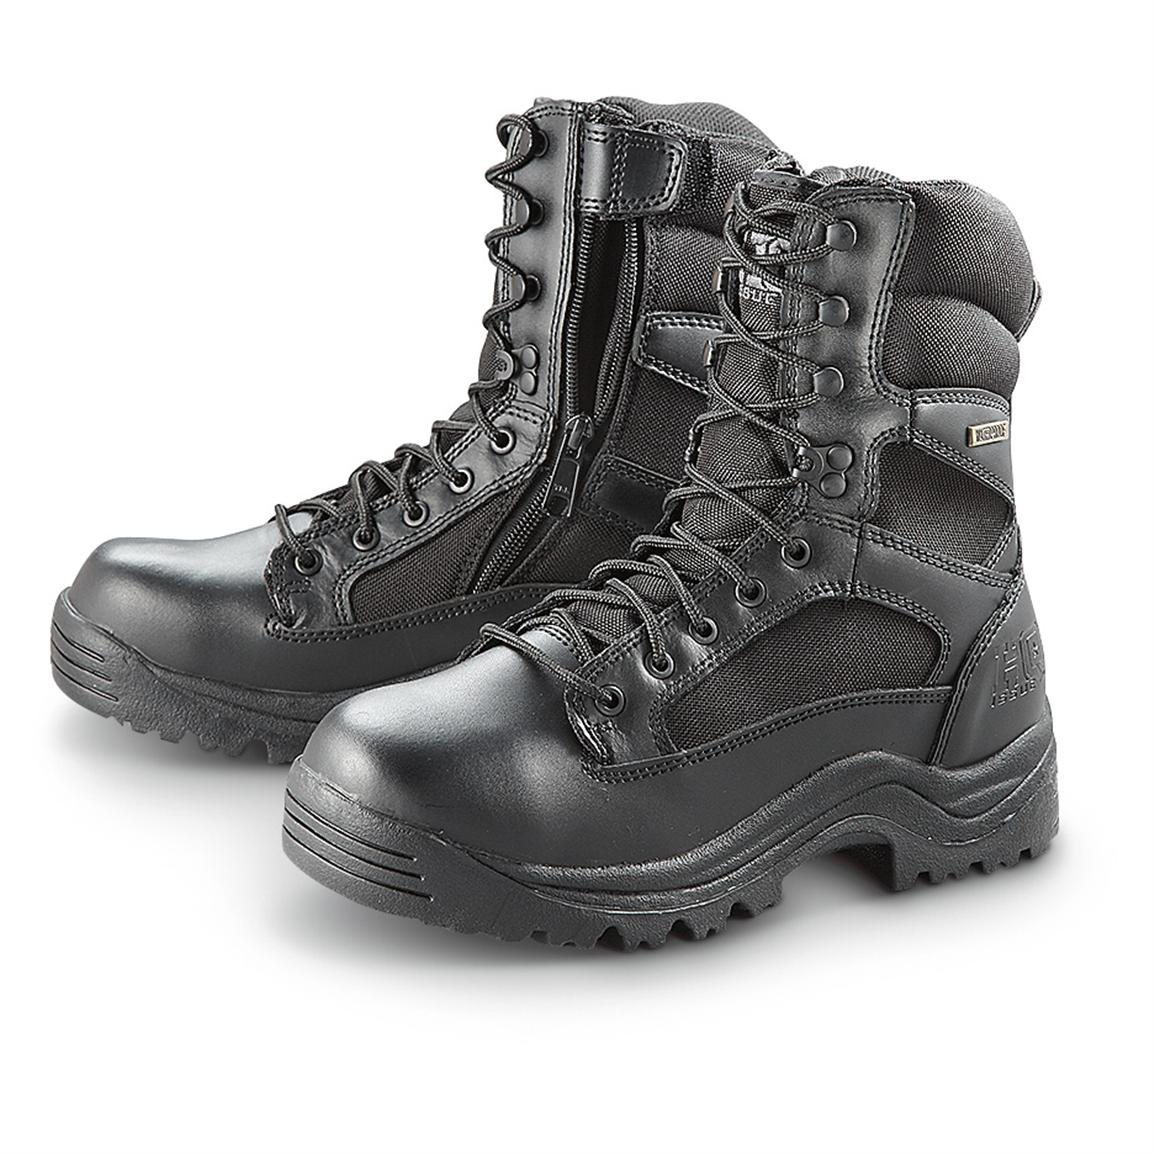 HQ ISSUE Men's Waterproof Side Zip Tactical Boots, Black